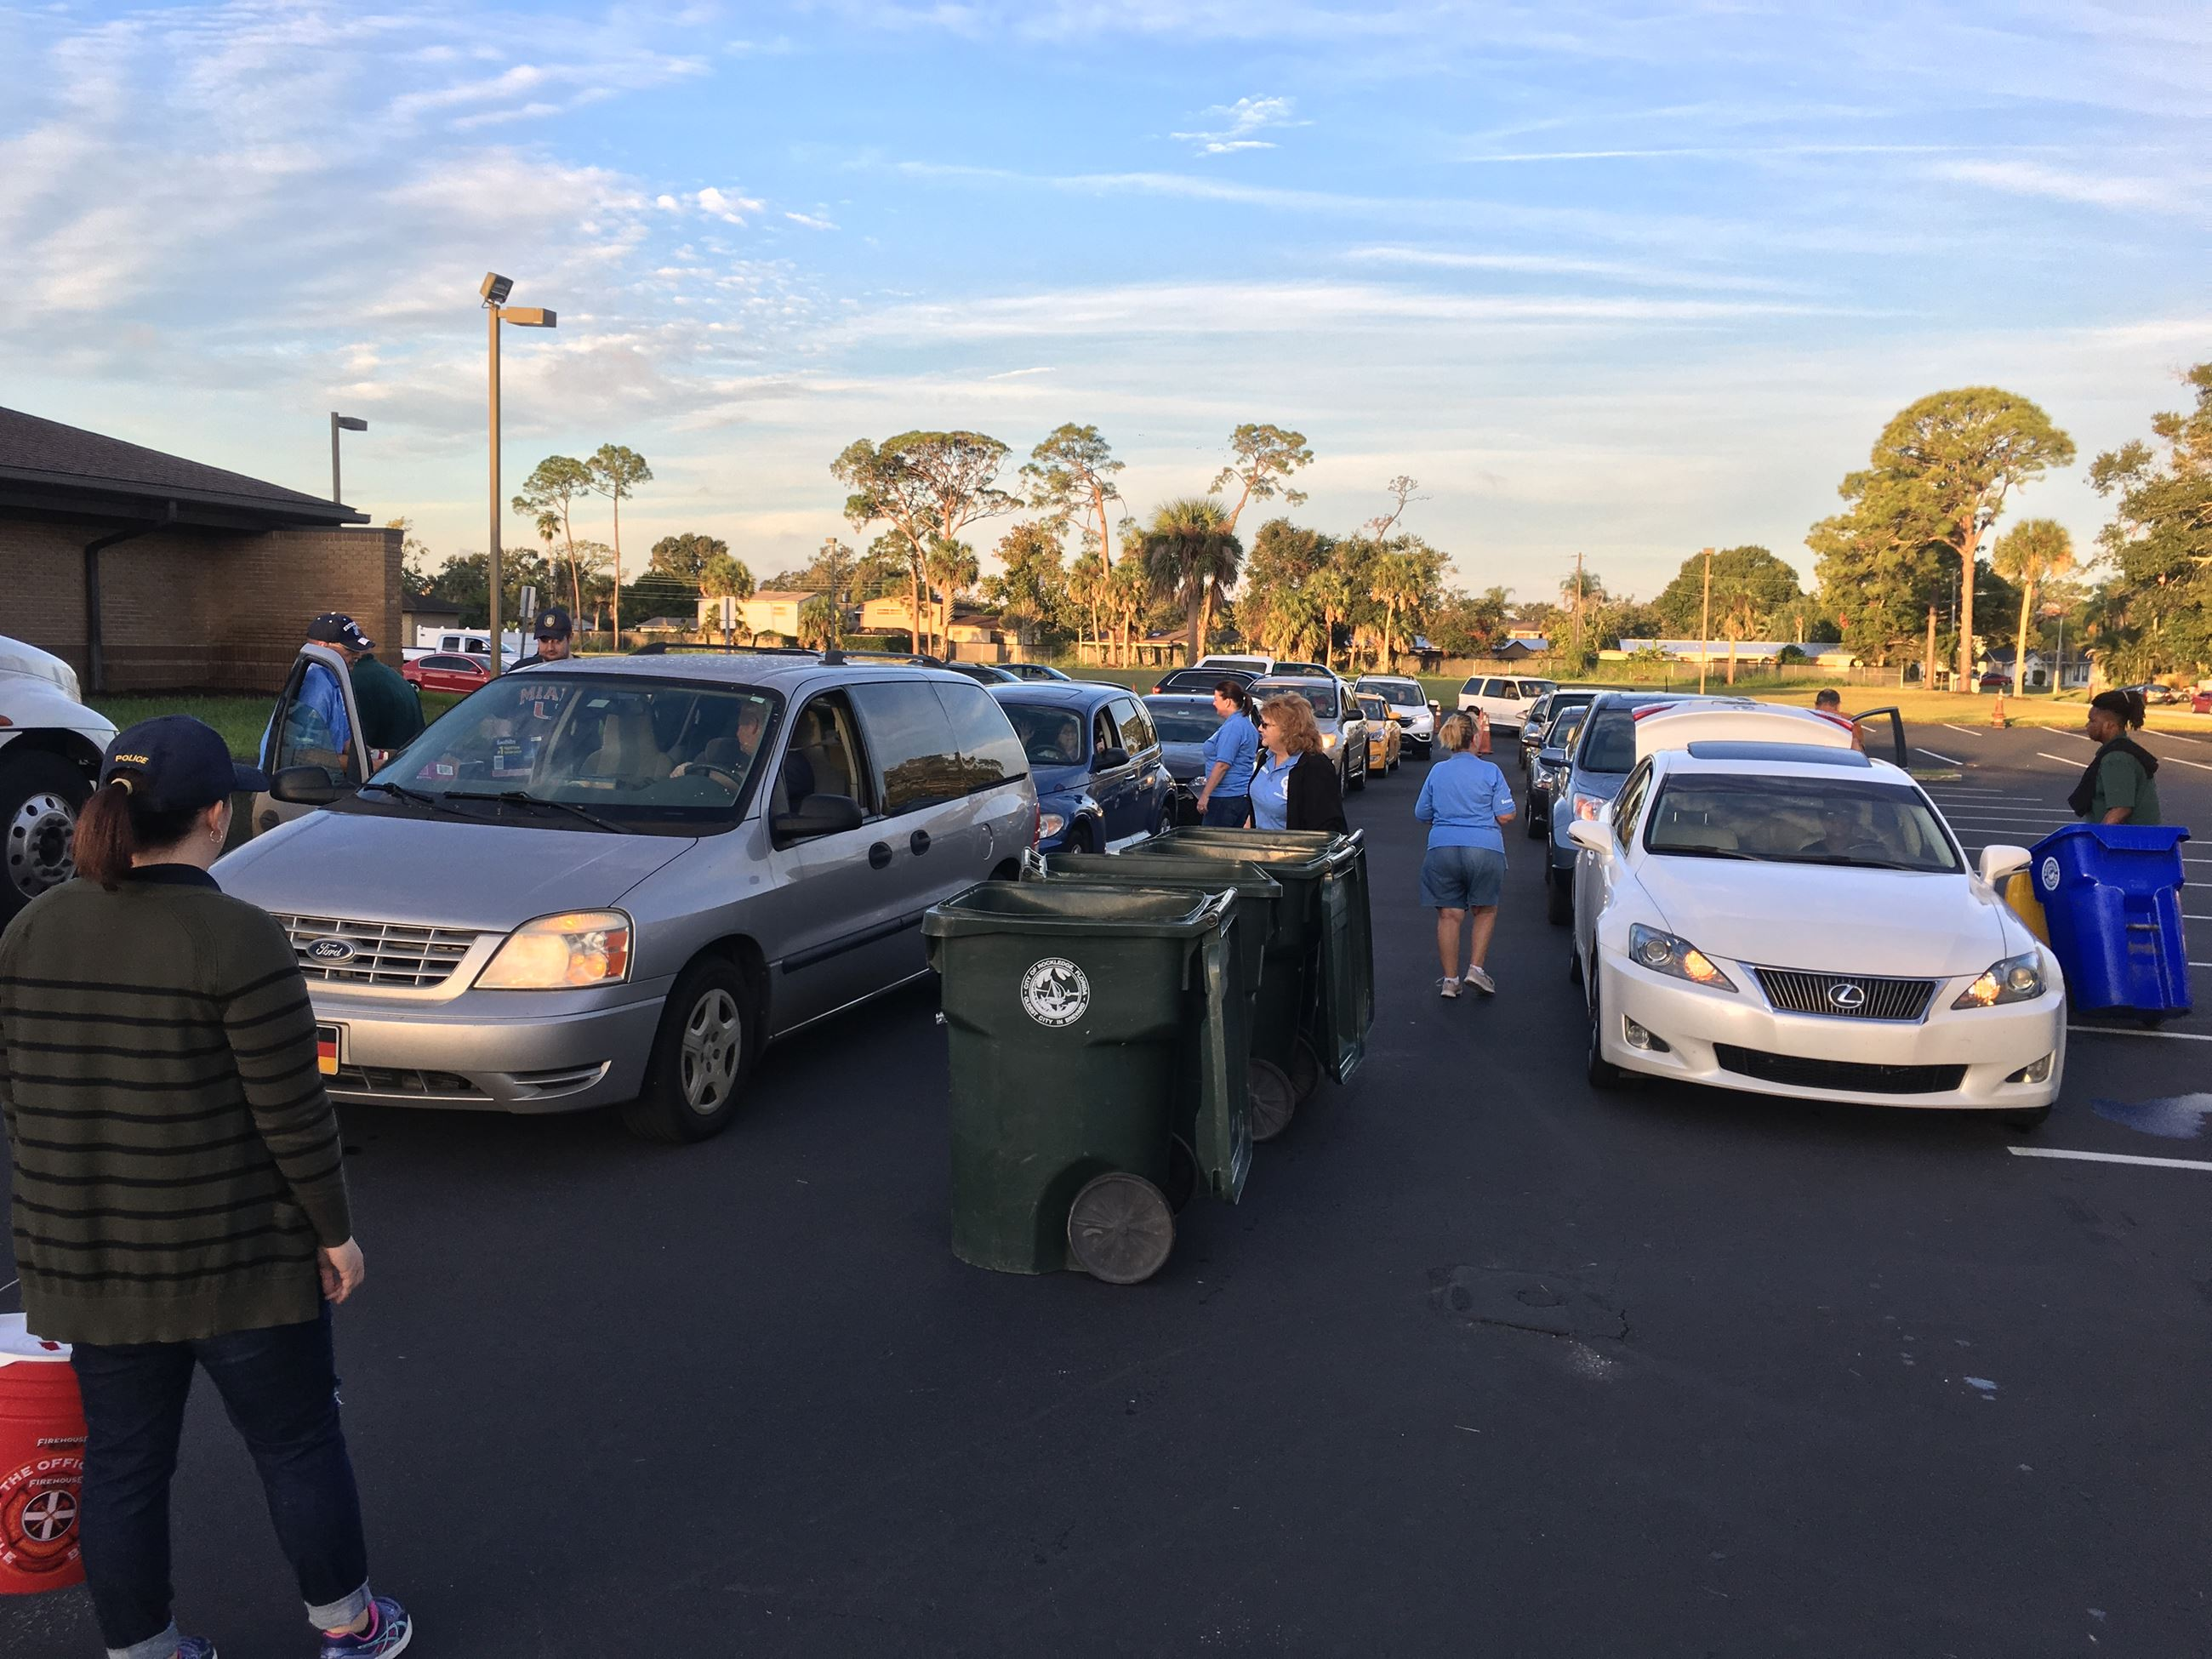 Cars lined up at the shred event